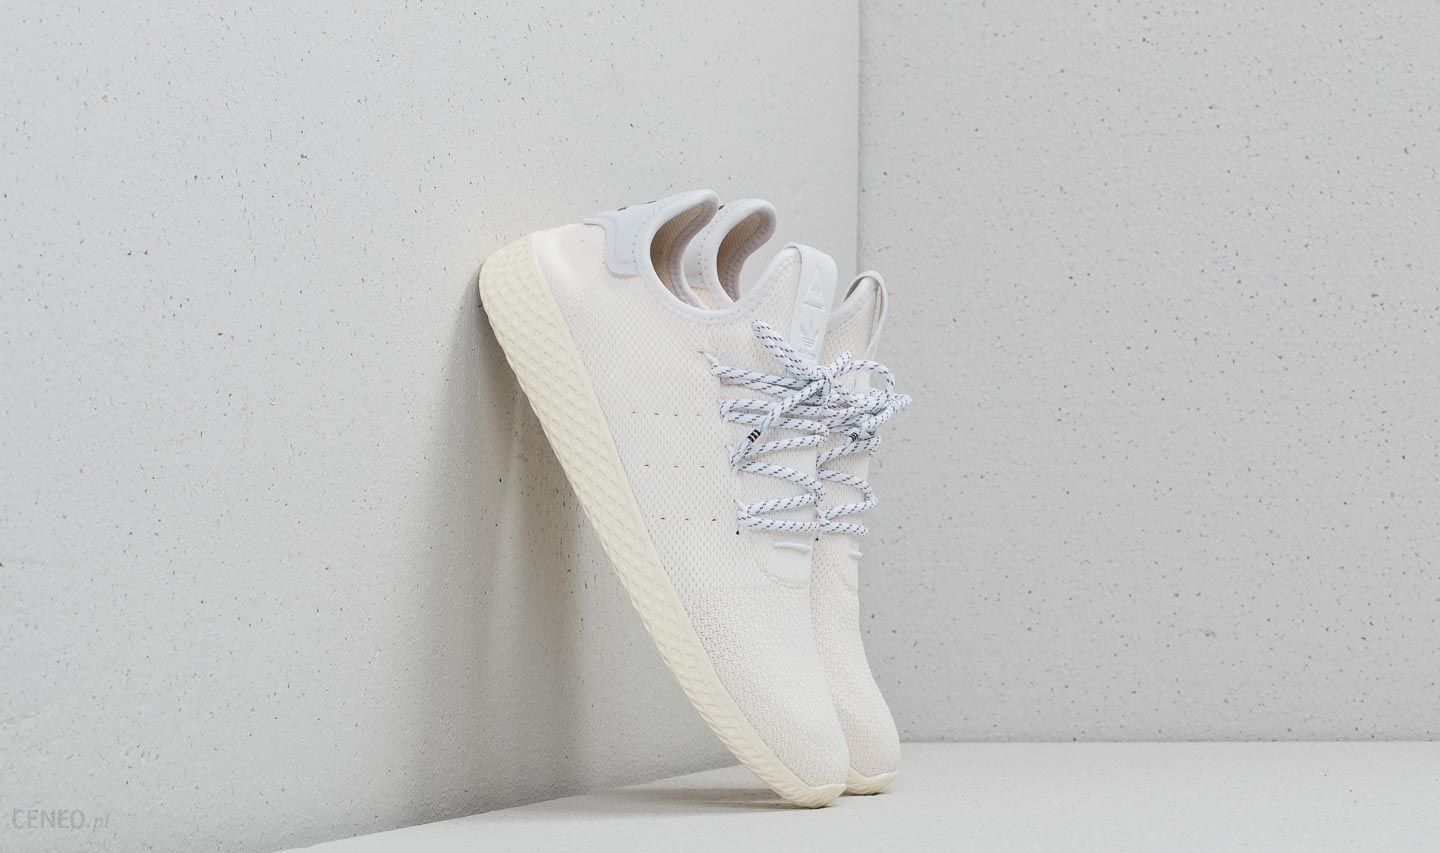 new style 52689 06db6 Adidas x Pharrell Williams Human Race HOLI Tennis BC Cream White/ Cream  White/ Ftw White - Ceneo.pl